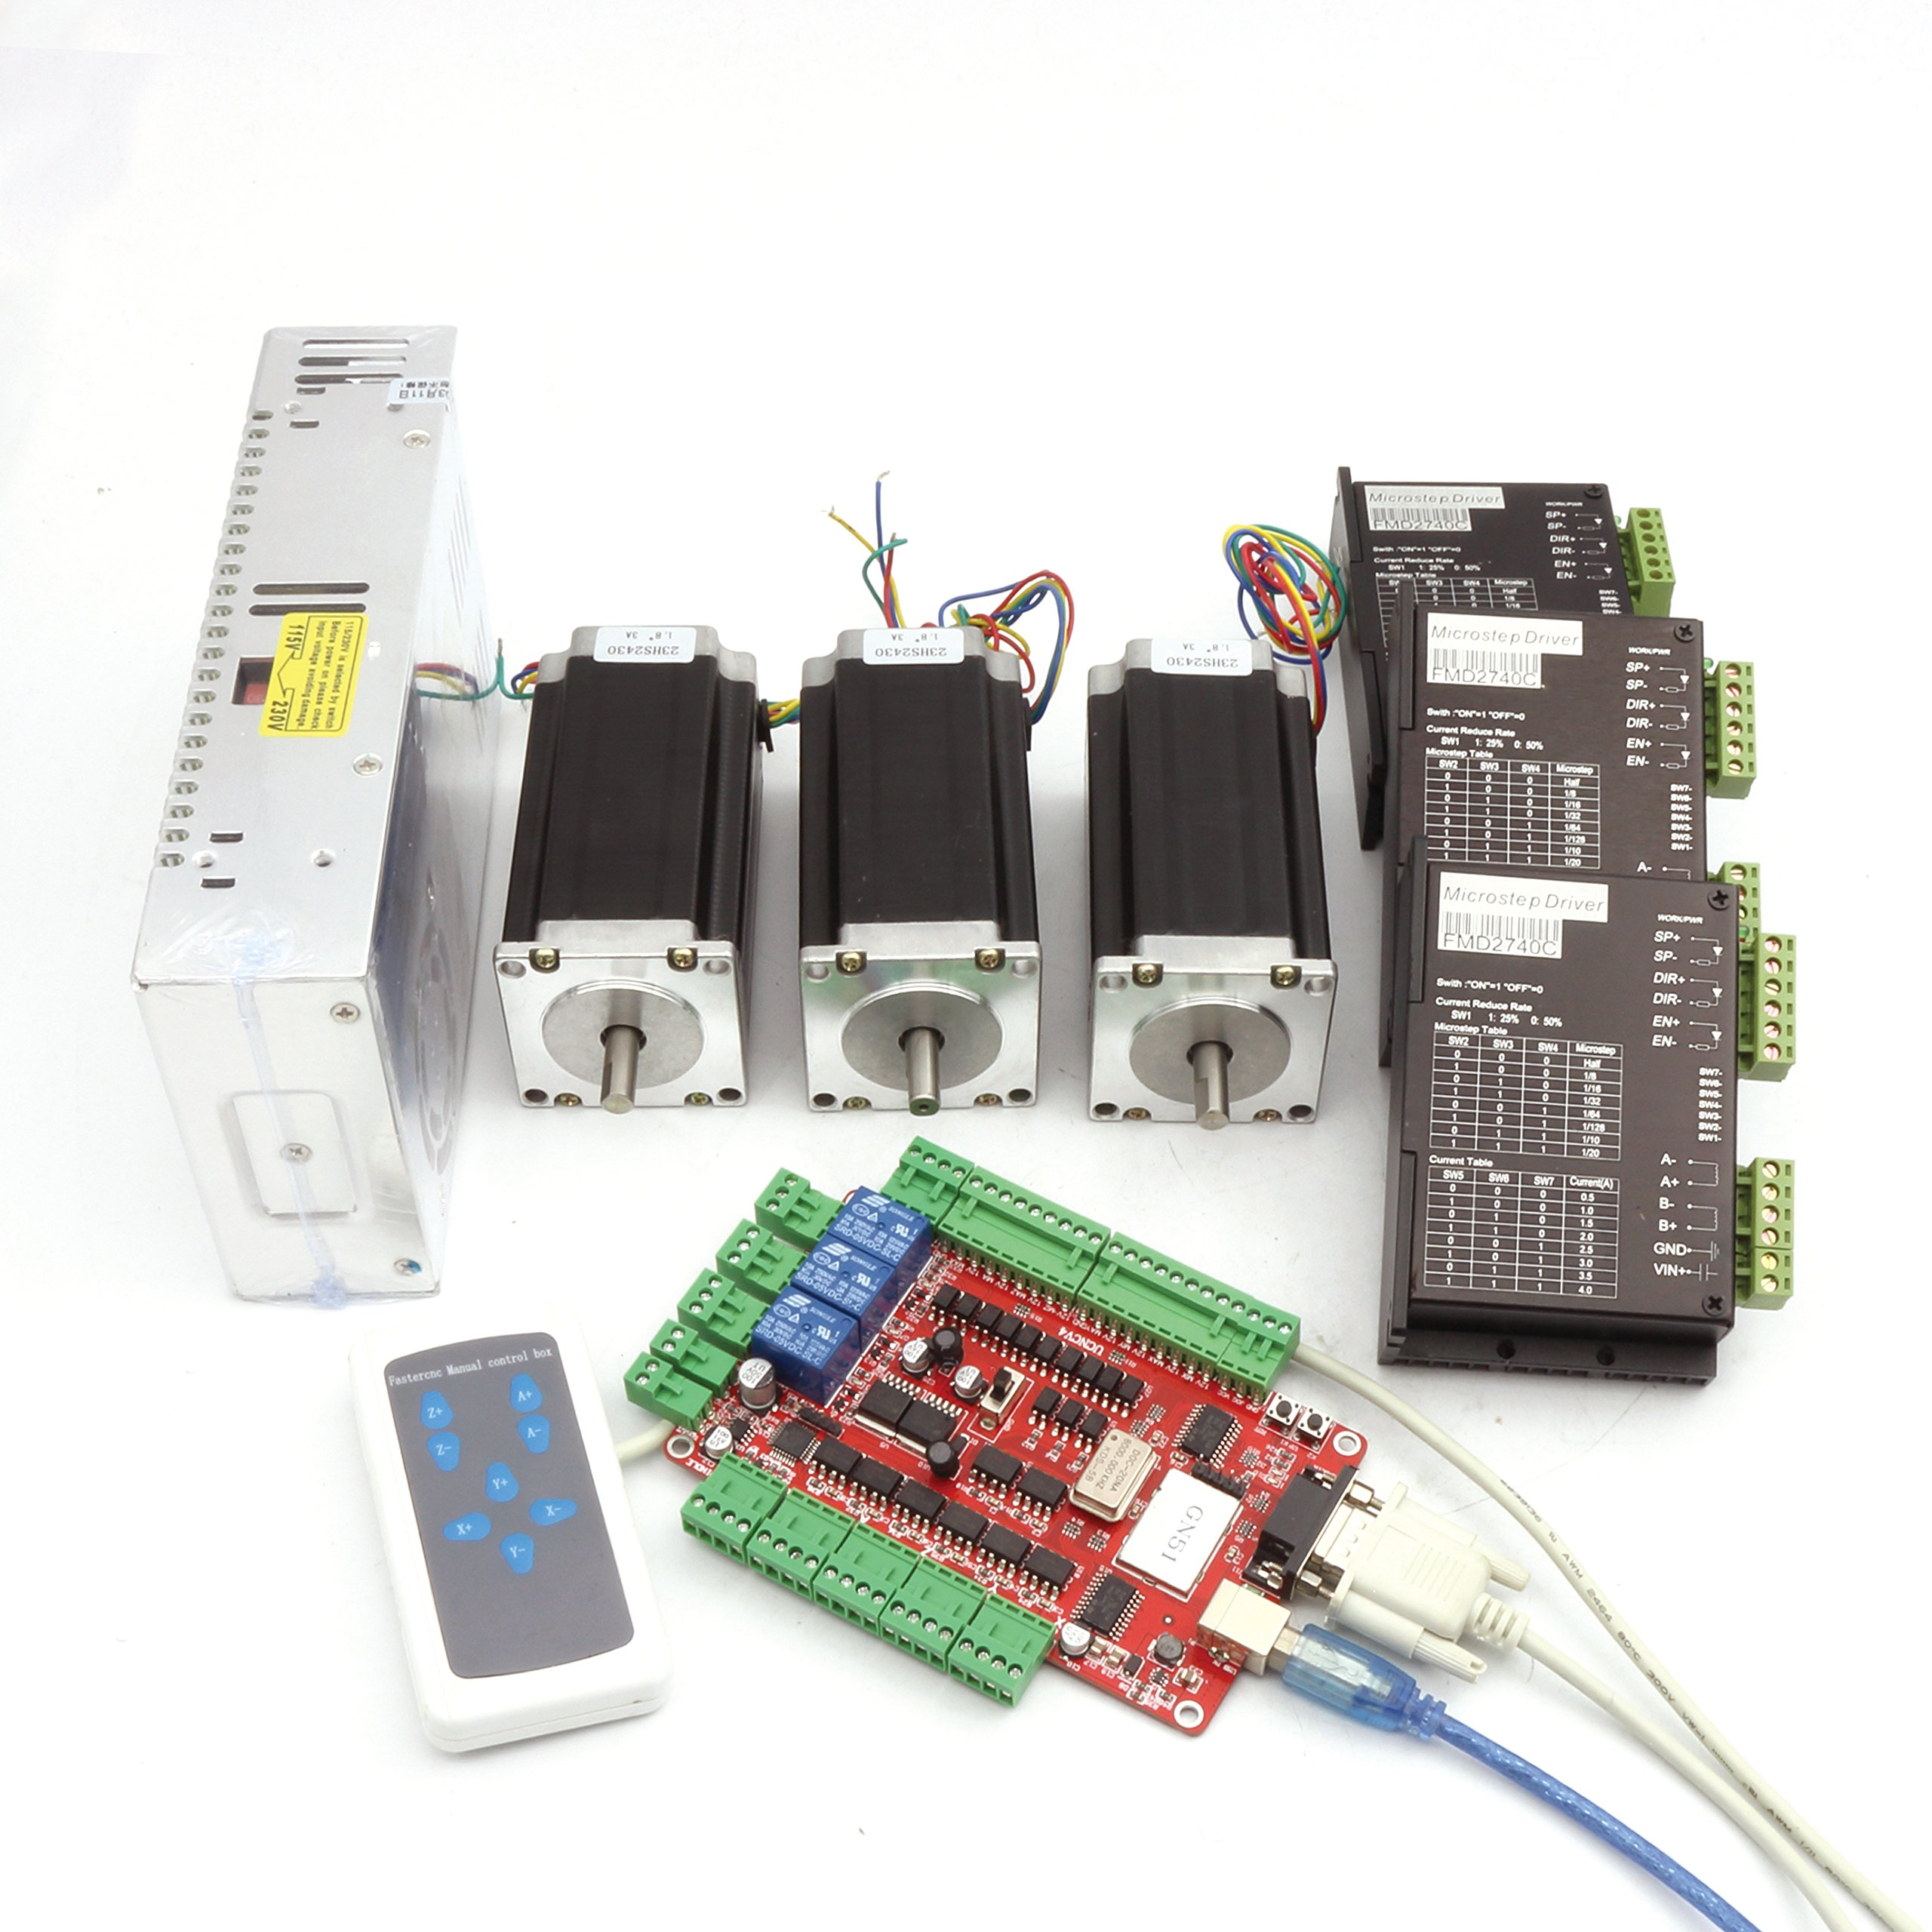 3 Axis CNC Kit Nema23 Stepper Motor (Dual Shaft) 425oz-in 112mm 3A & Driver  40VDC 4A 128 microstep for CNC Router Milling Engraving Machine